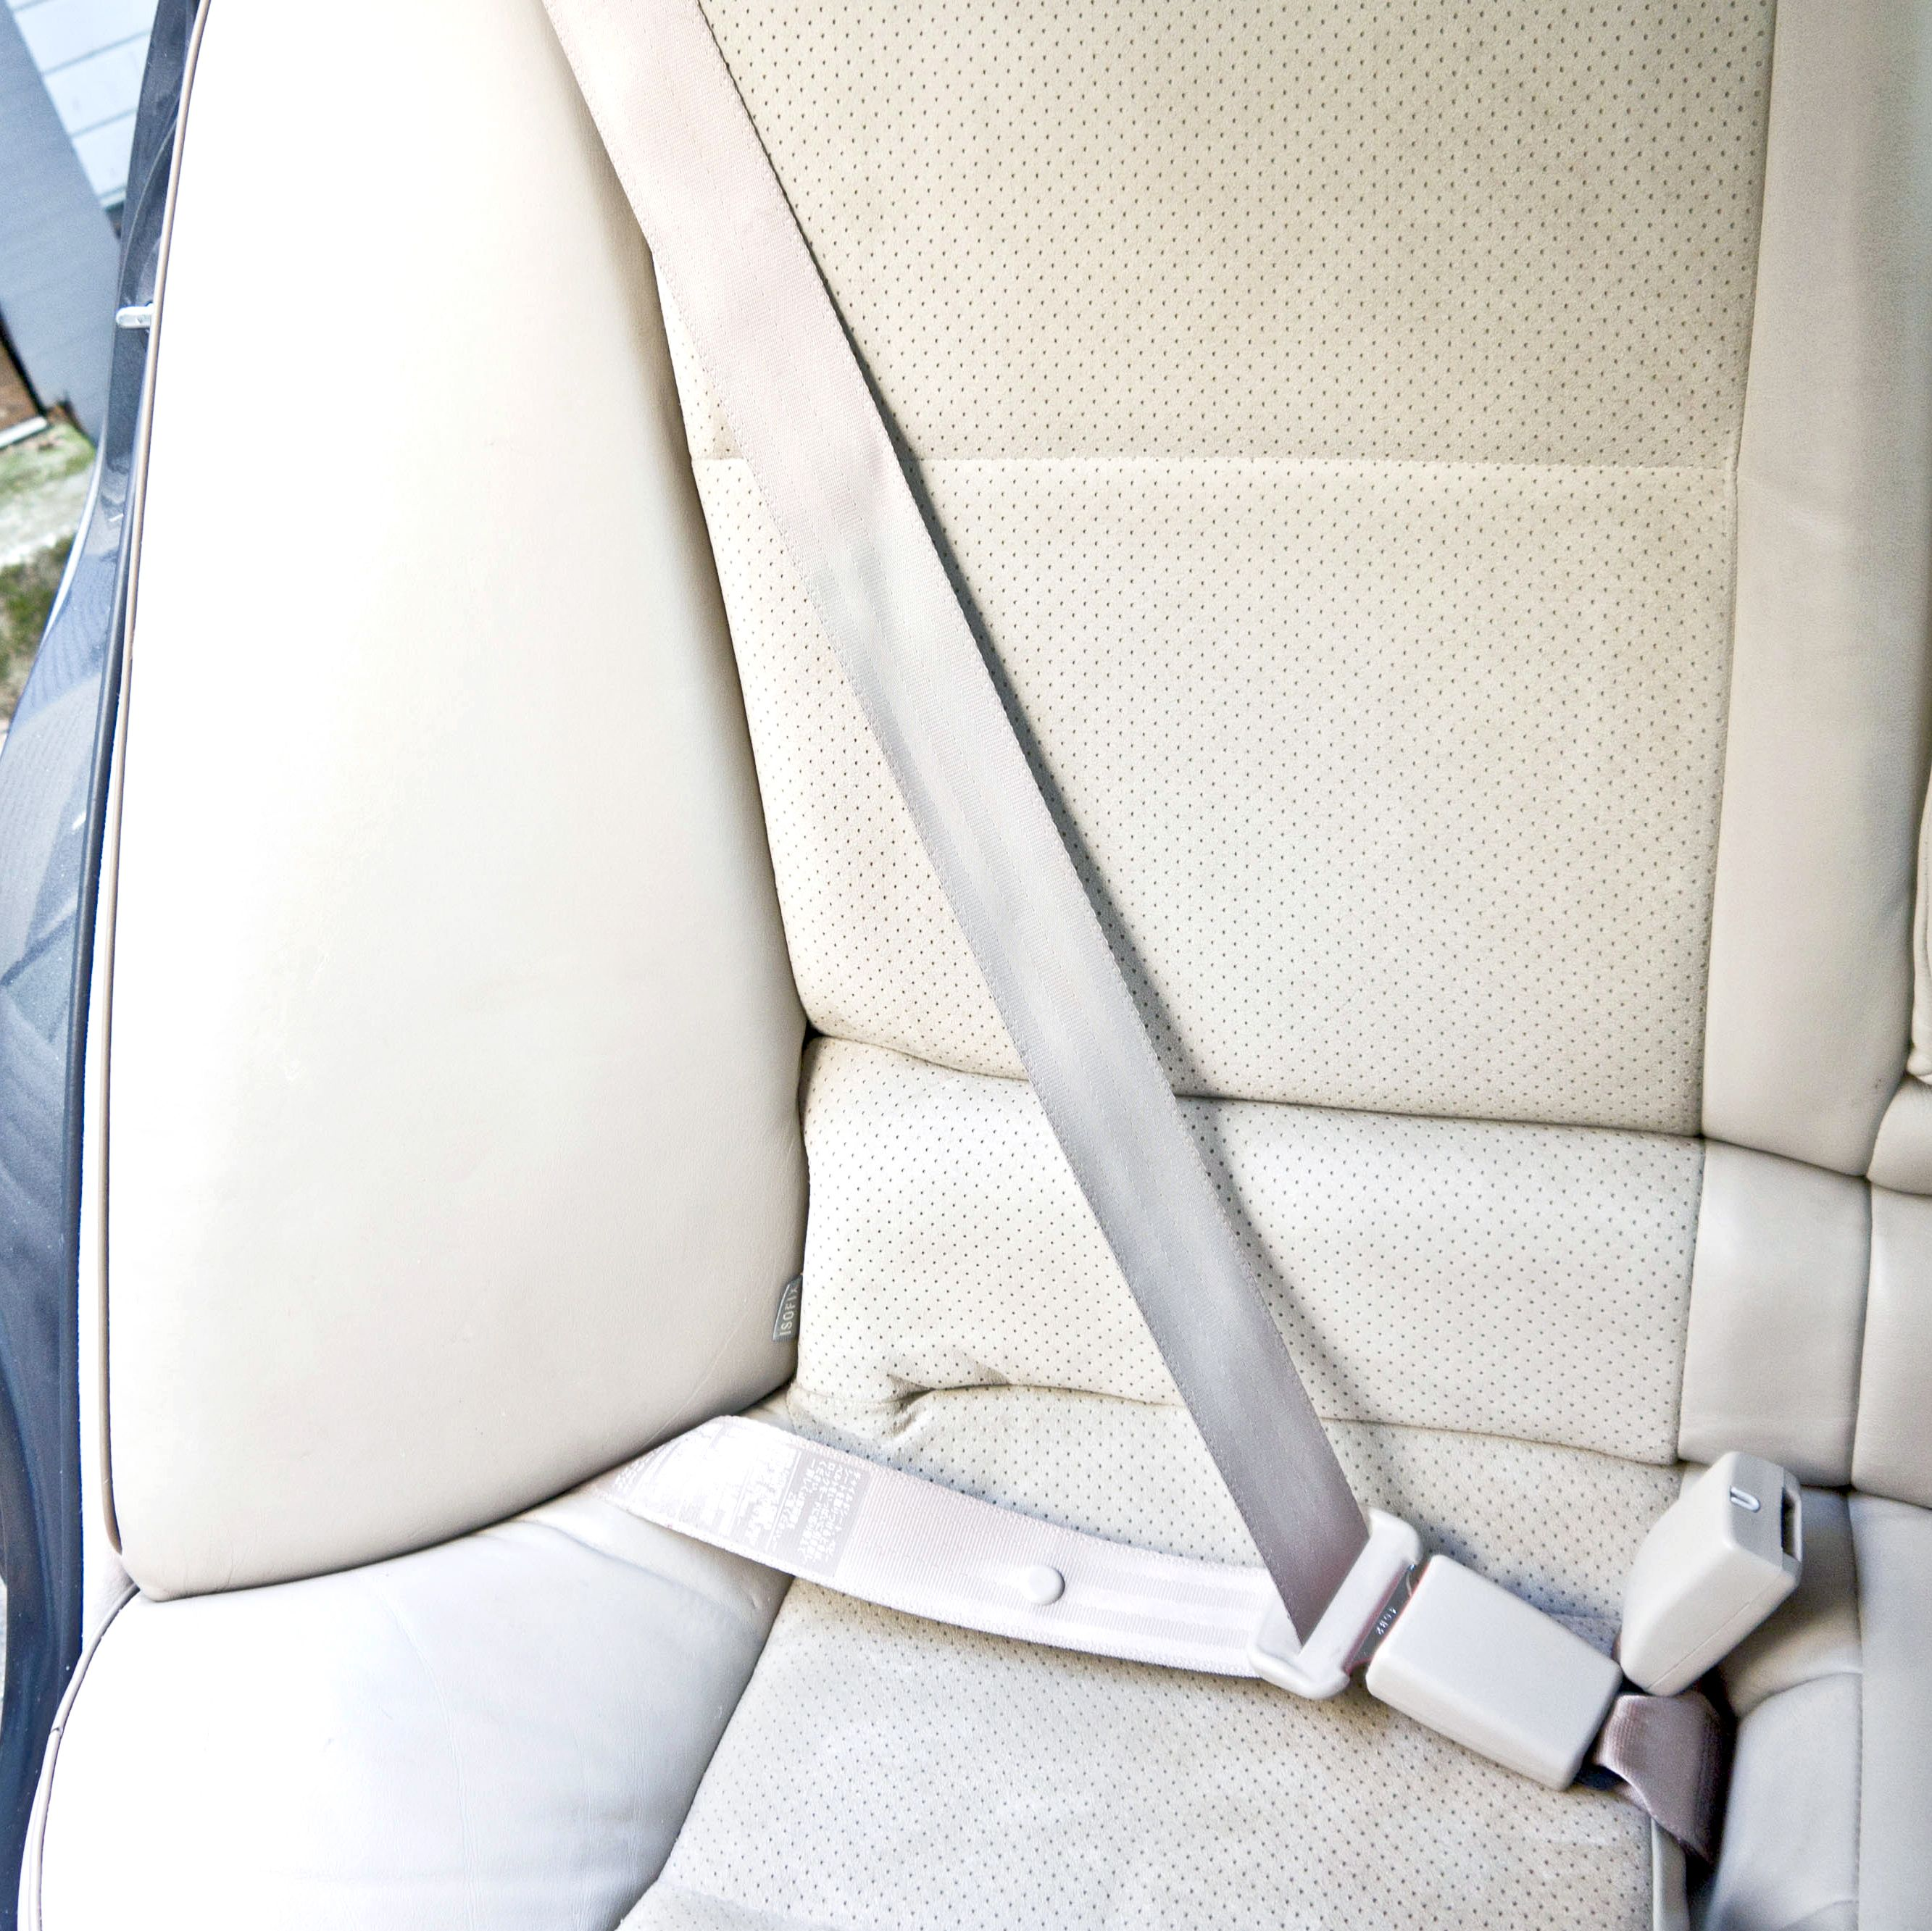 How To Clean Your Seat Belts The Natural Way Never Thought About Cleaning Before